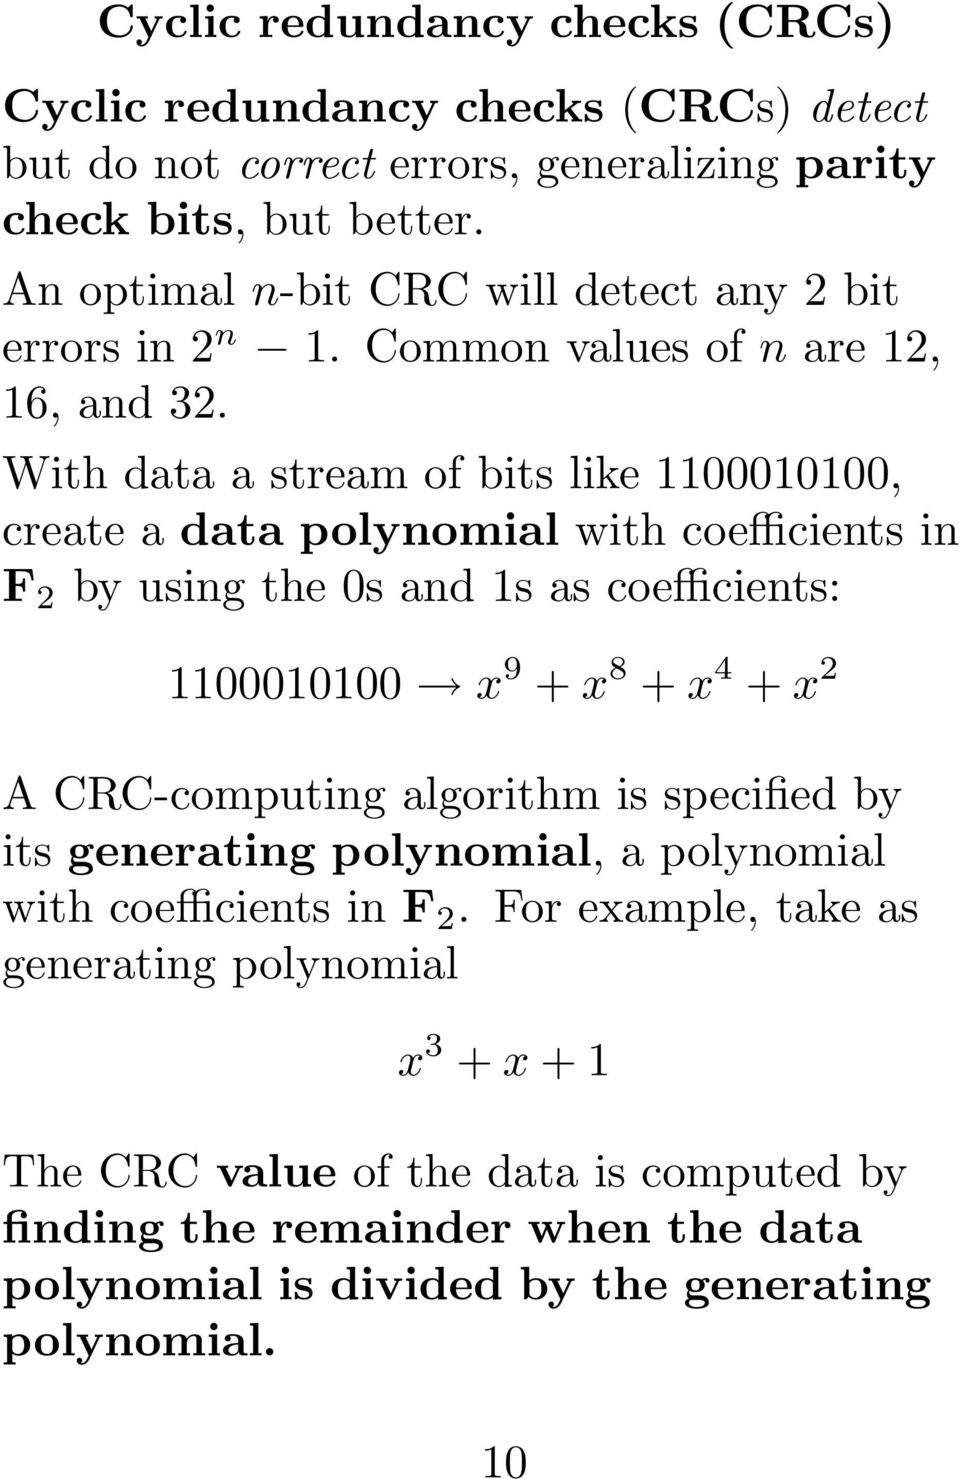 With data a stream of bits like 1100010100, create a data polynomial with coefficients in F 2 by using the 0s and 1s as coefficients: 1100010100 x 9 + x 8 + x 4 + x 2 A